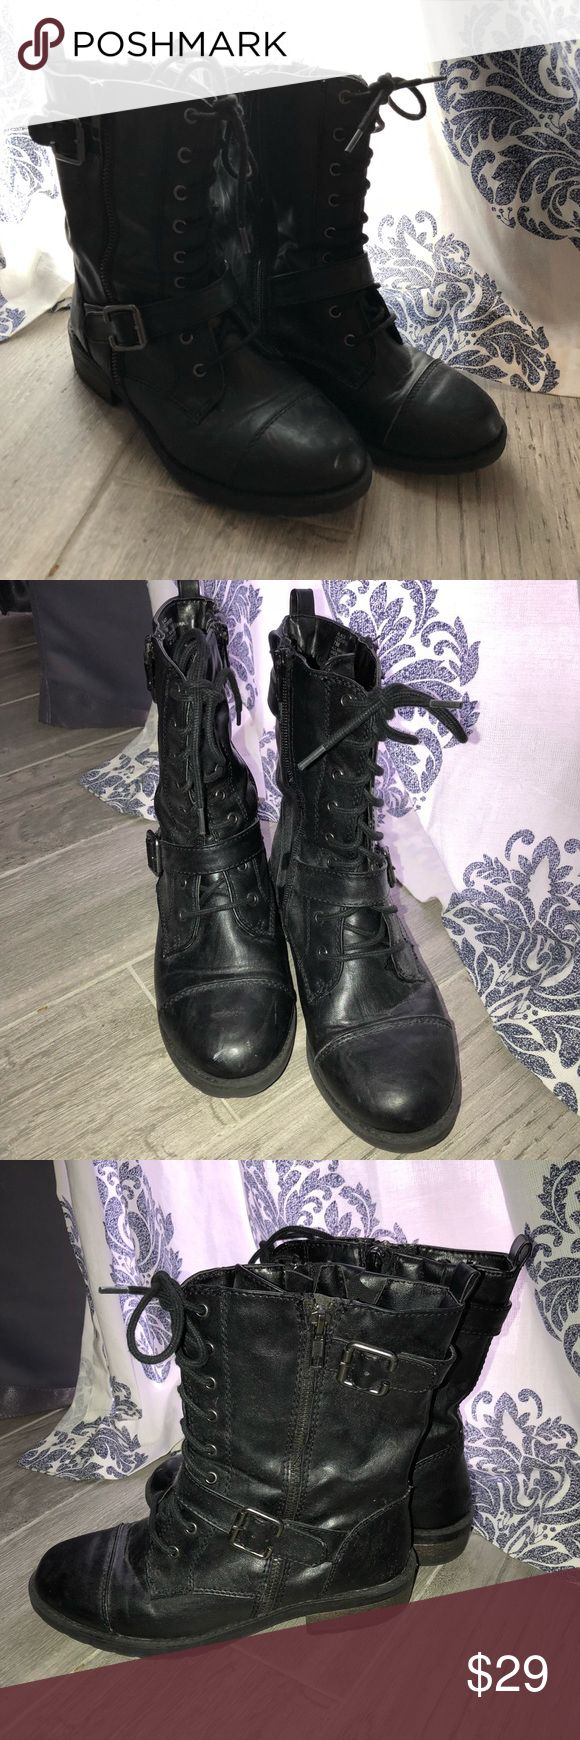 [White Mountain] Black Combat Boots - Size 7 Black faux leather combat boots by White Mountain. Lace up. Also has working zippers on each side of boots and buckles across laces and back of ankle. Size 7. In great used condition. White Mountain Shoes Combat & Moto Boots